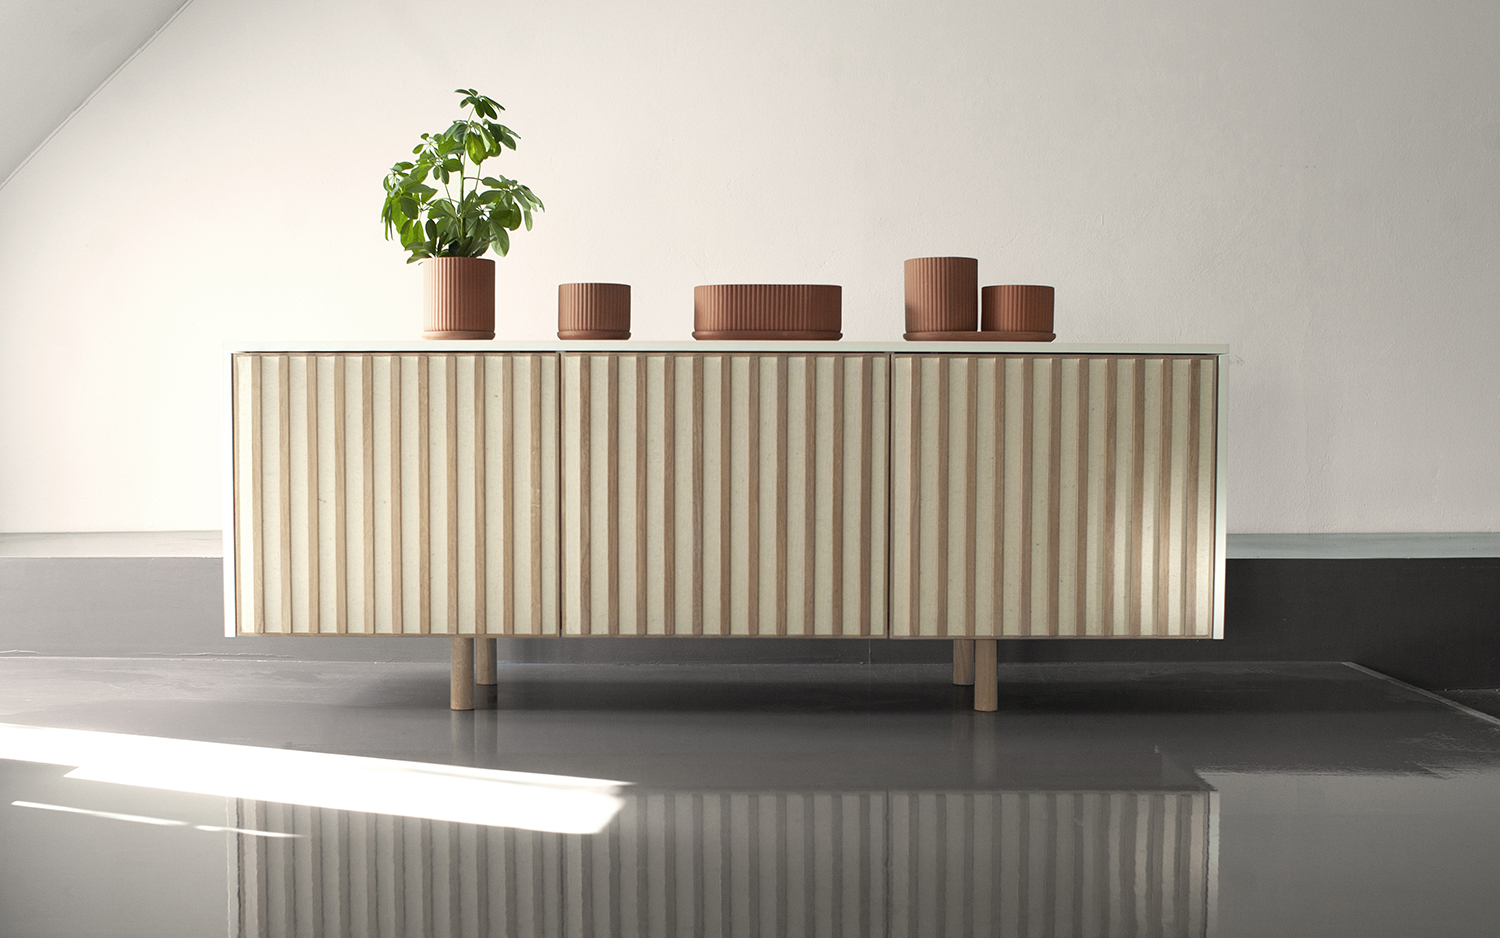 Klorofyll table pots in Terracotta - designed by Anderssen & Voll + dB Silent sideboard by Jonas Stokke and Øystein Austad of StokkeAustad, featuring thick acoustic wool felt in the held in place by solid oak wood slats.